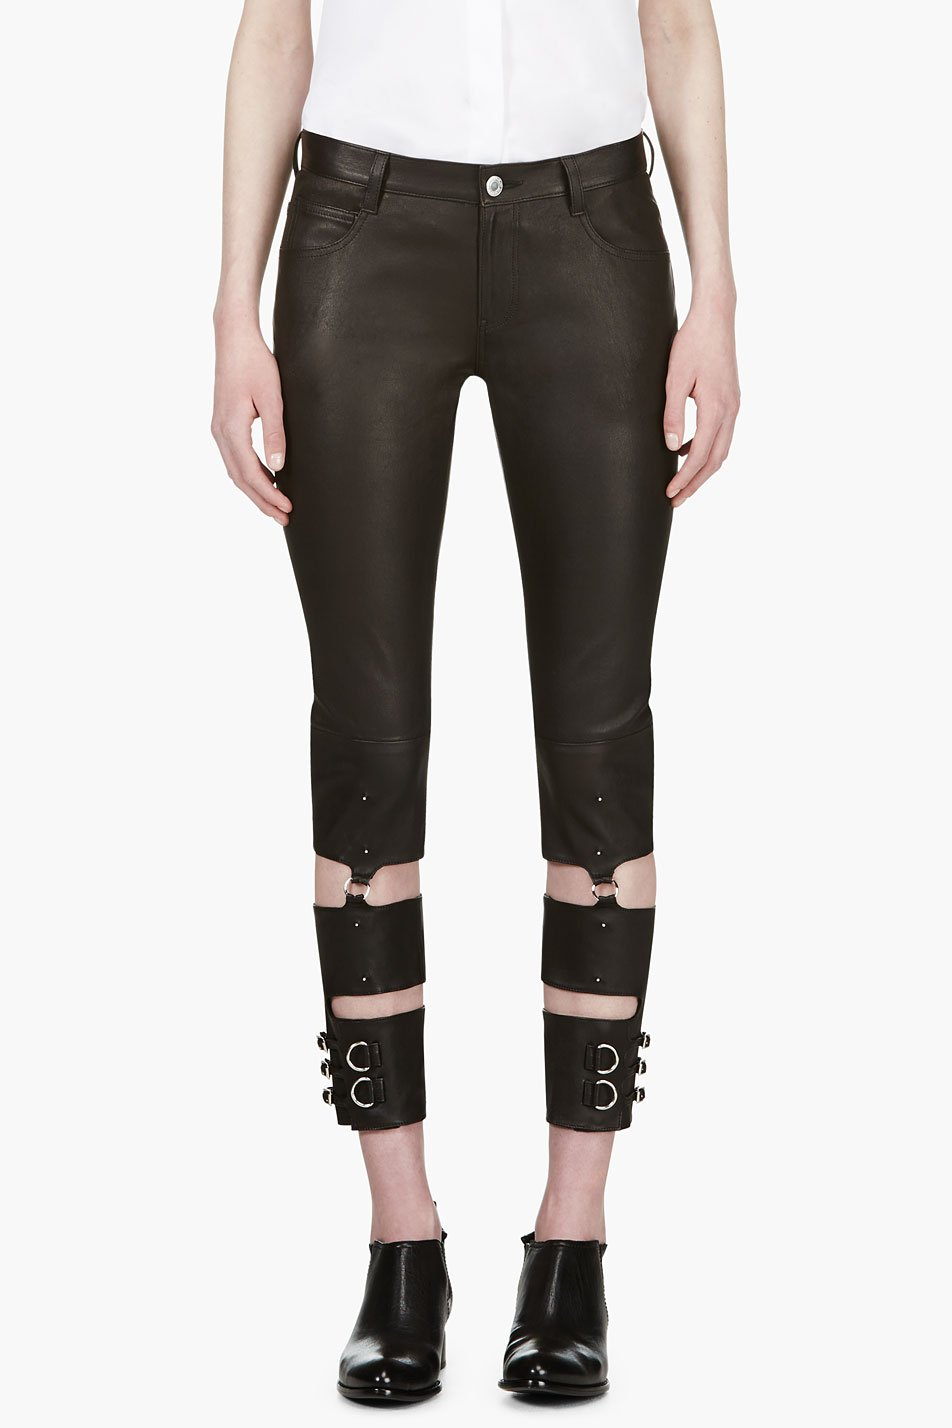 undercover black lambskin hardware trousers